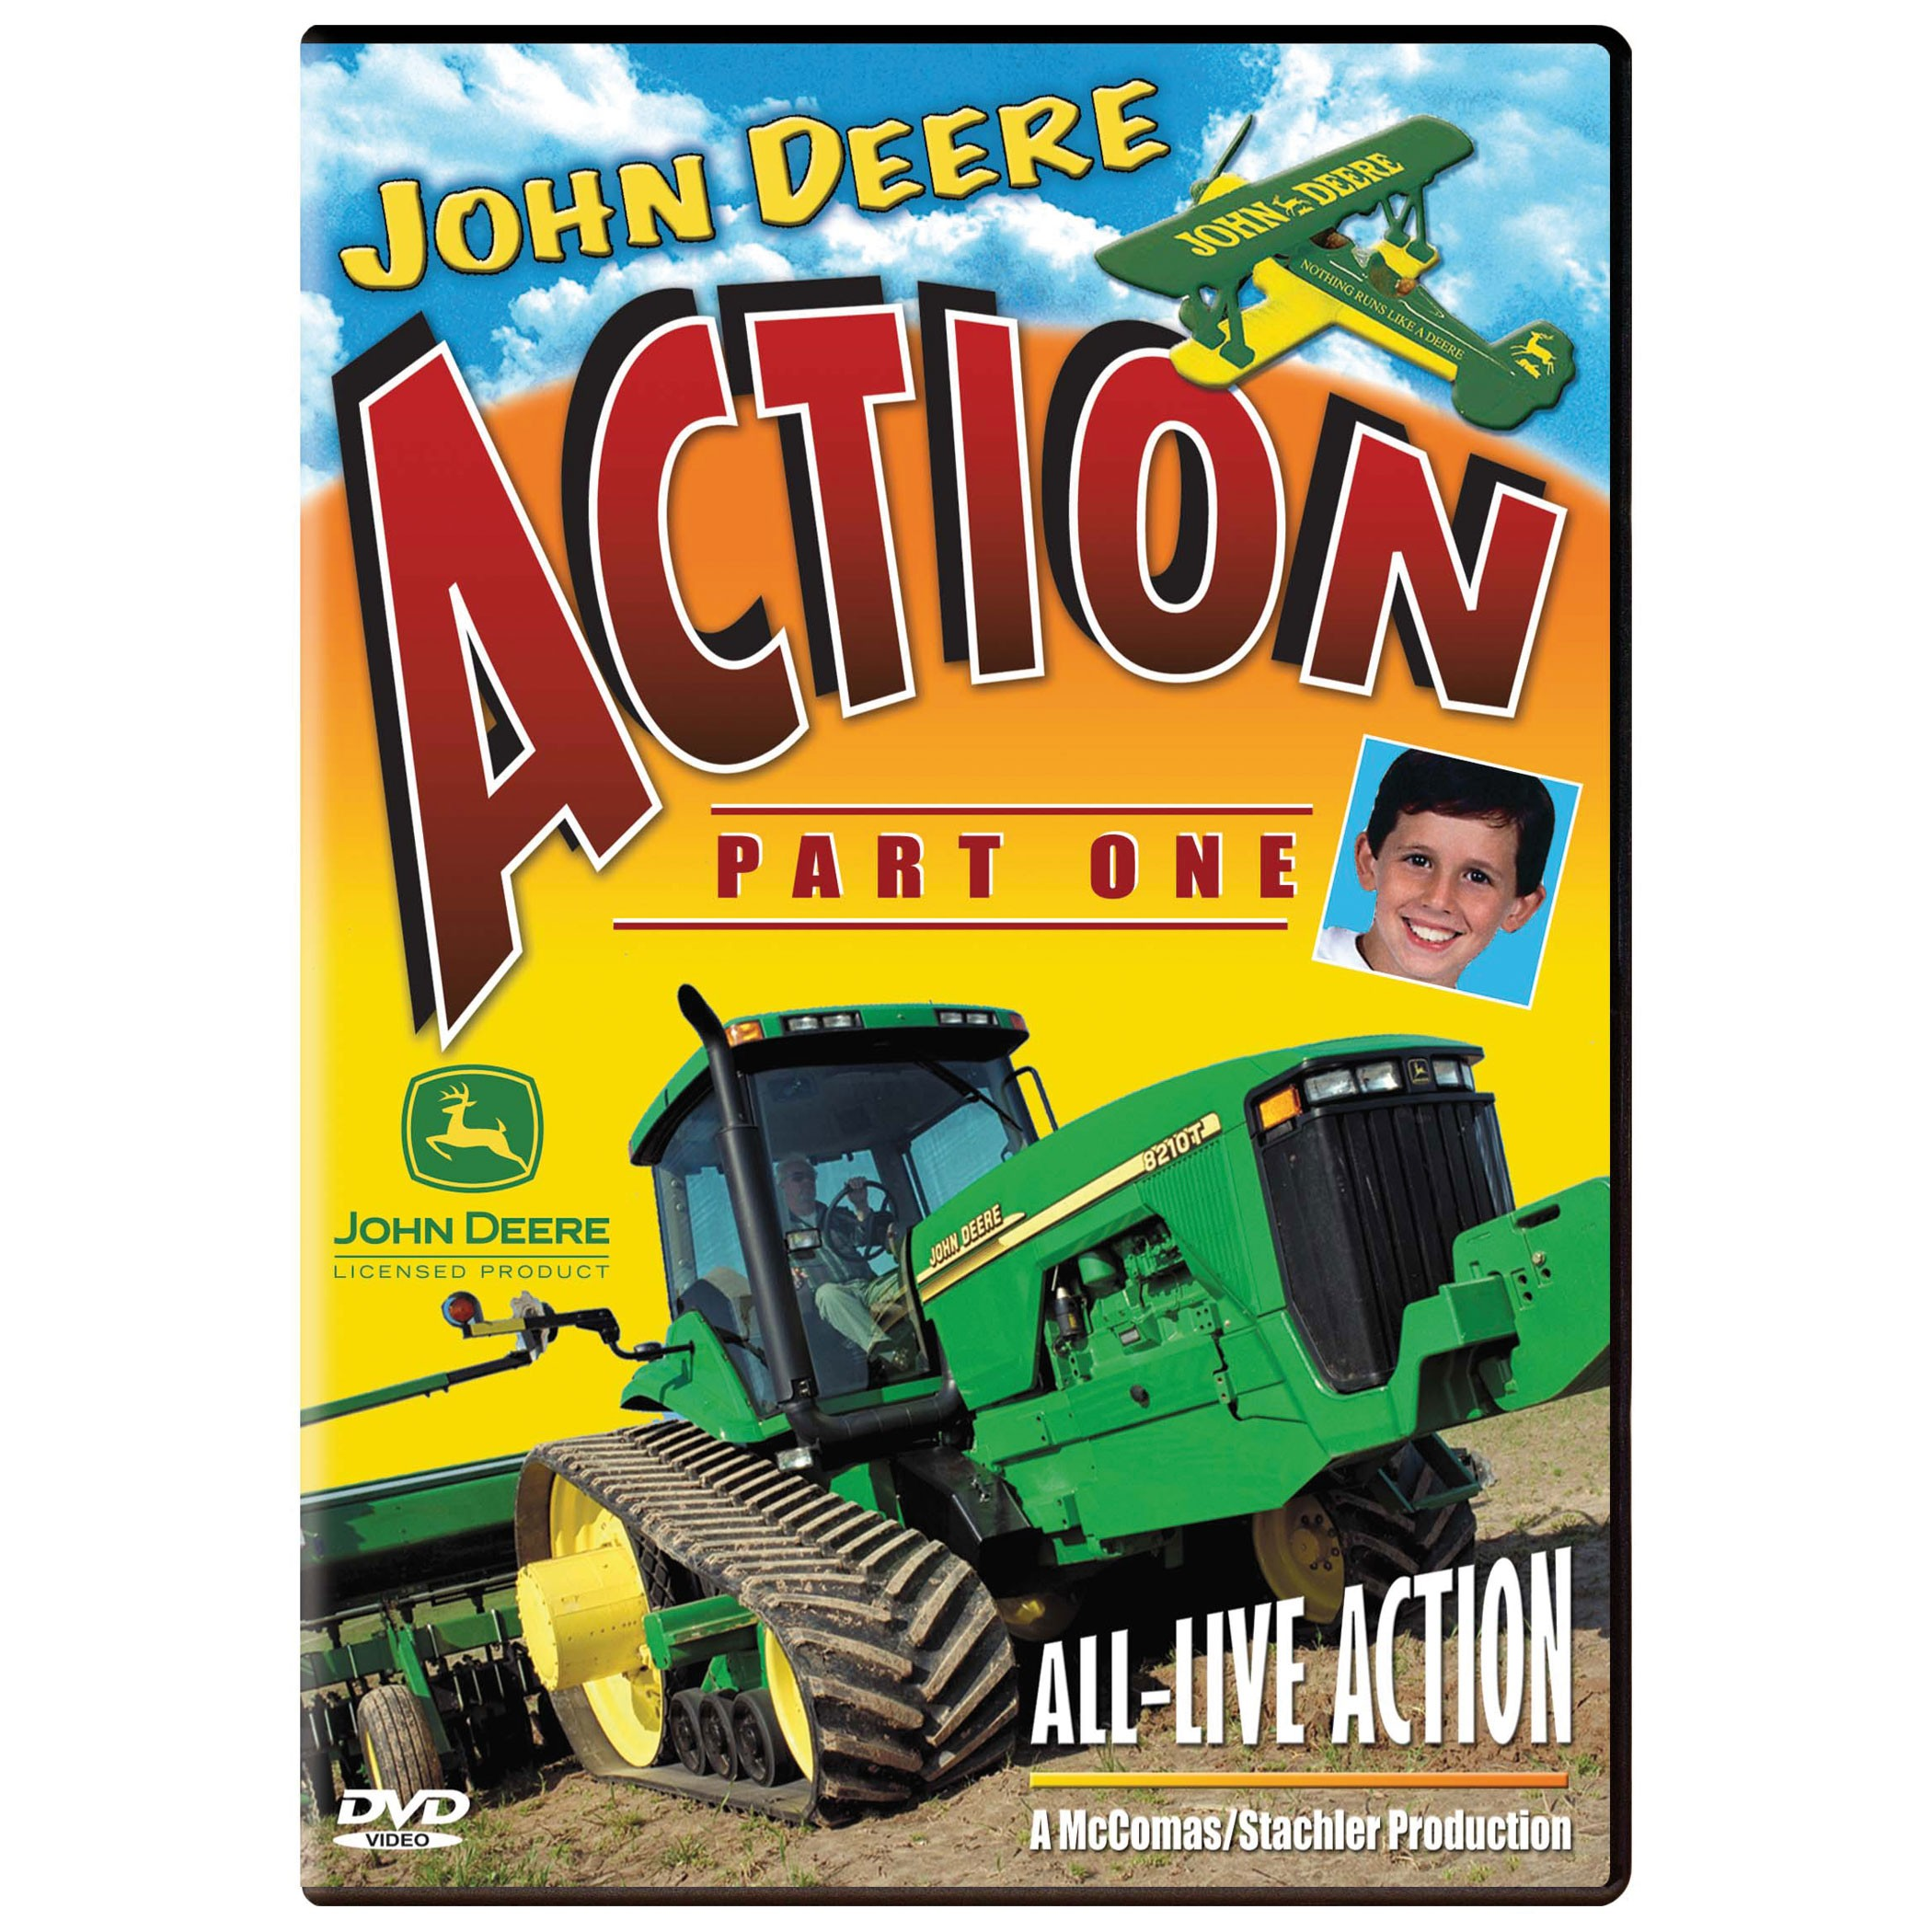 ... about john deere series left off more wall to wall john deere action